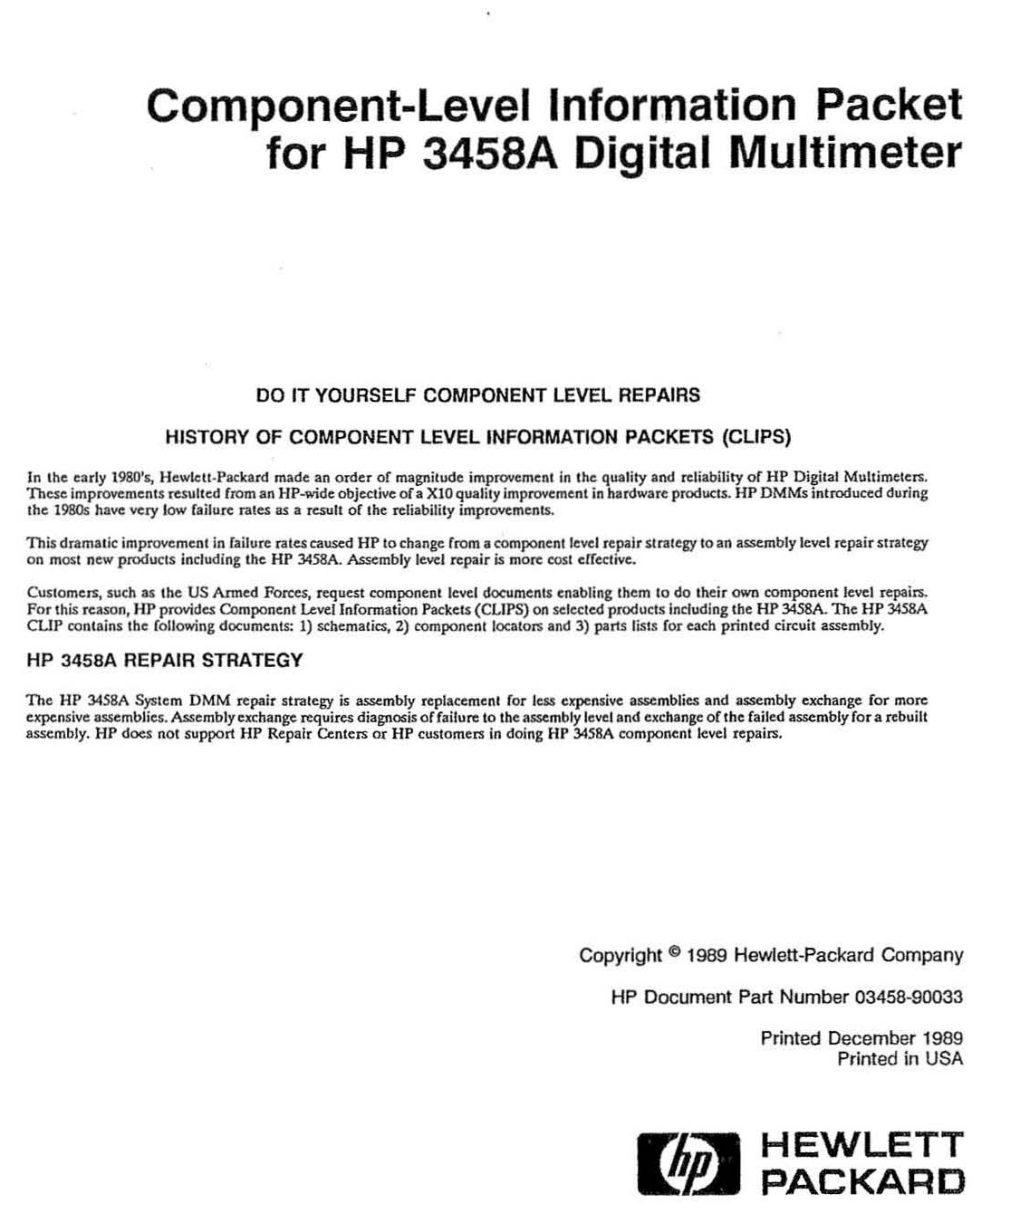 Information Packet for 3458A